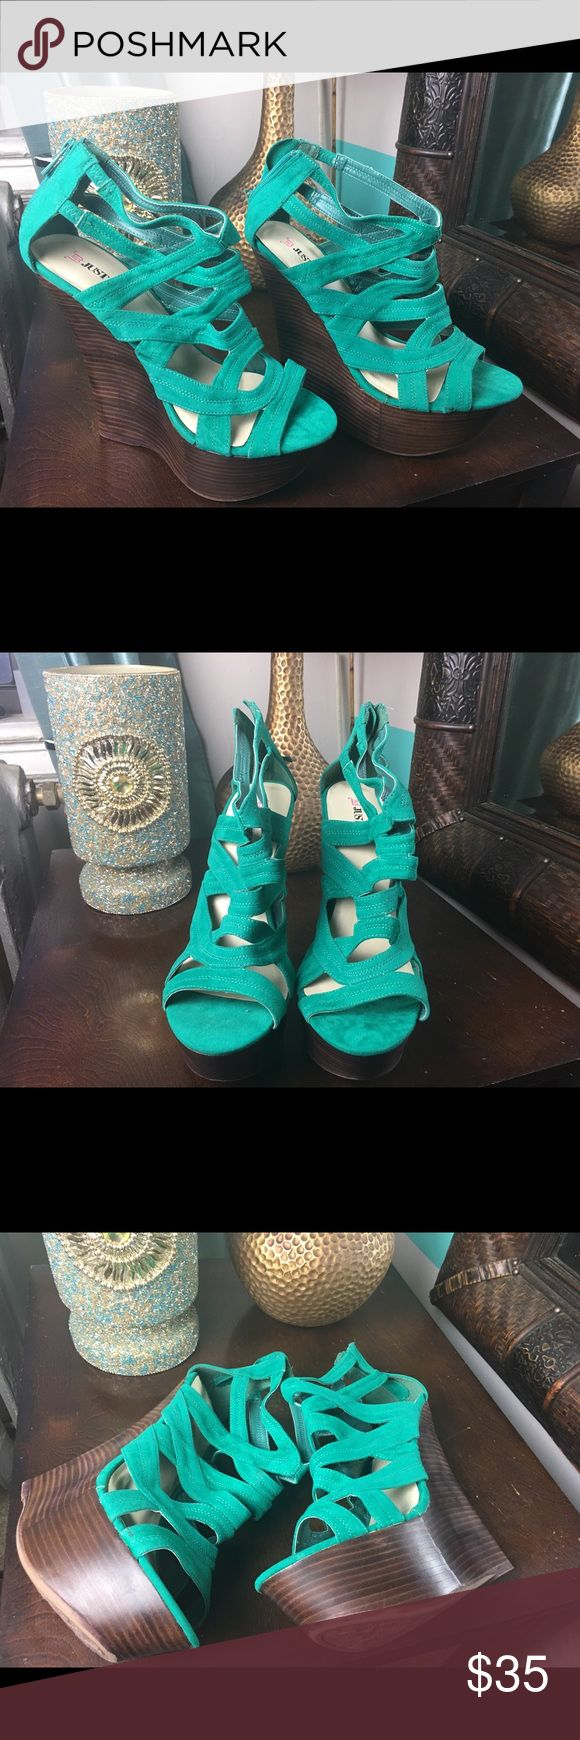 Turquoise wedges These wedges featuring back zip, man made sole, straps, wood wedge. They will finish off any outfit with ultra chic style. Only worn in house. JustFab Shoes Wedges